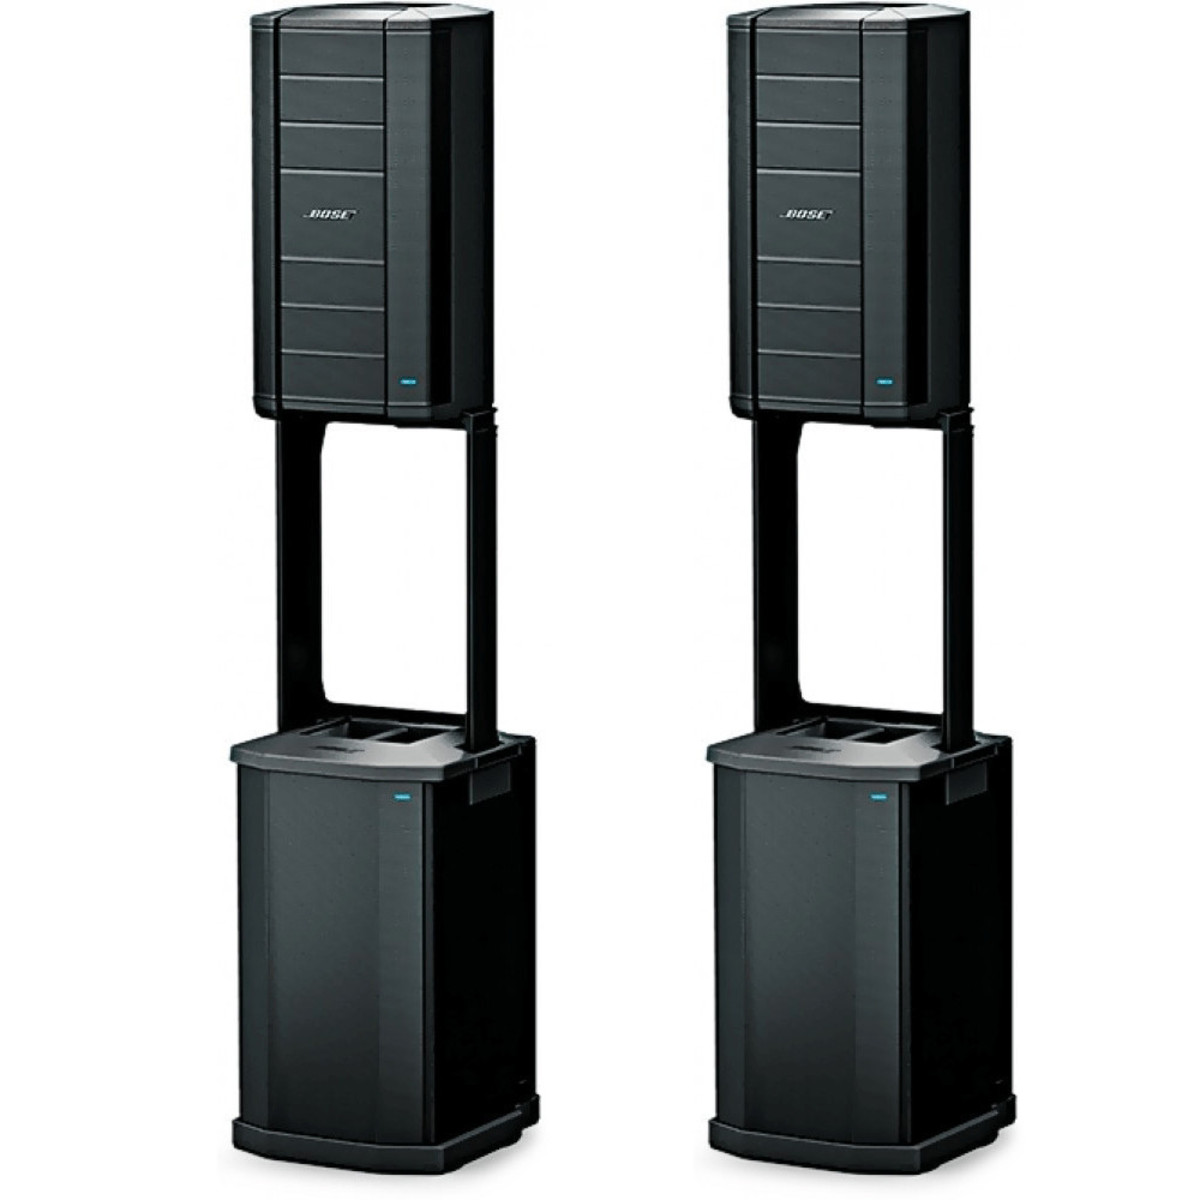 bose f1 syst me sono st r o flexible array caissons f1. Black Bedroom Furniture Sets. Home Design Ideas